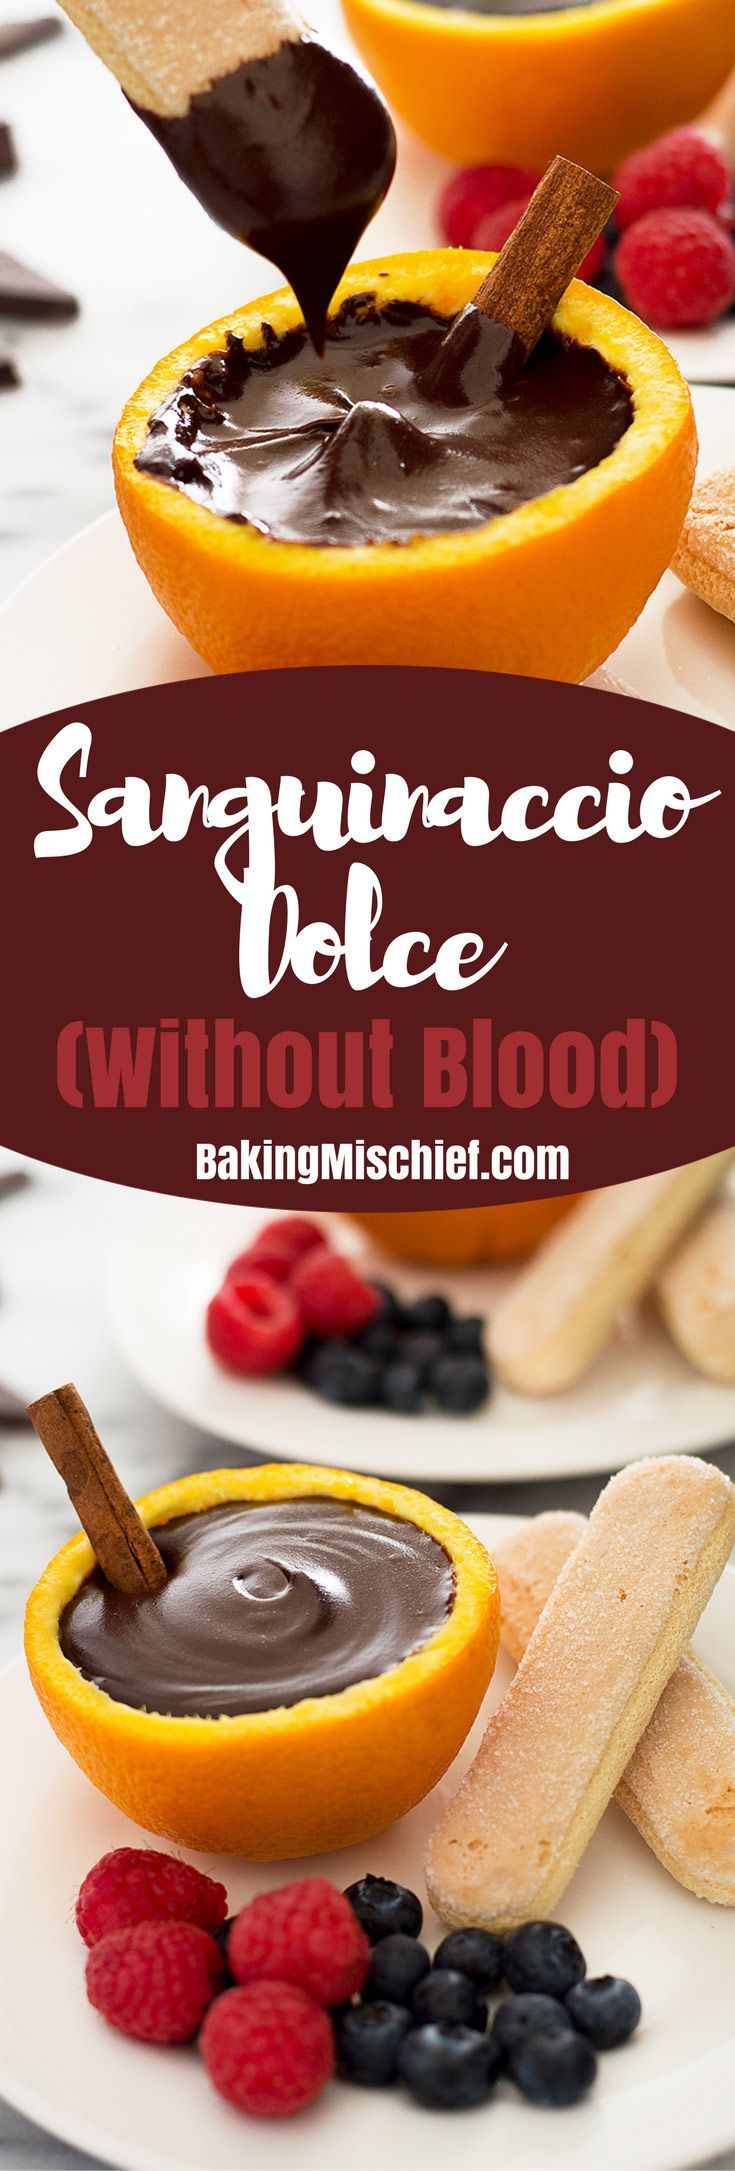 0160b4d736 You can make Sanguinaccio Dolce without blood for a surprisingly easy